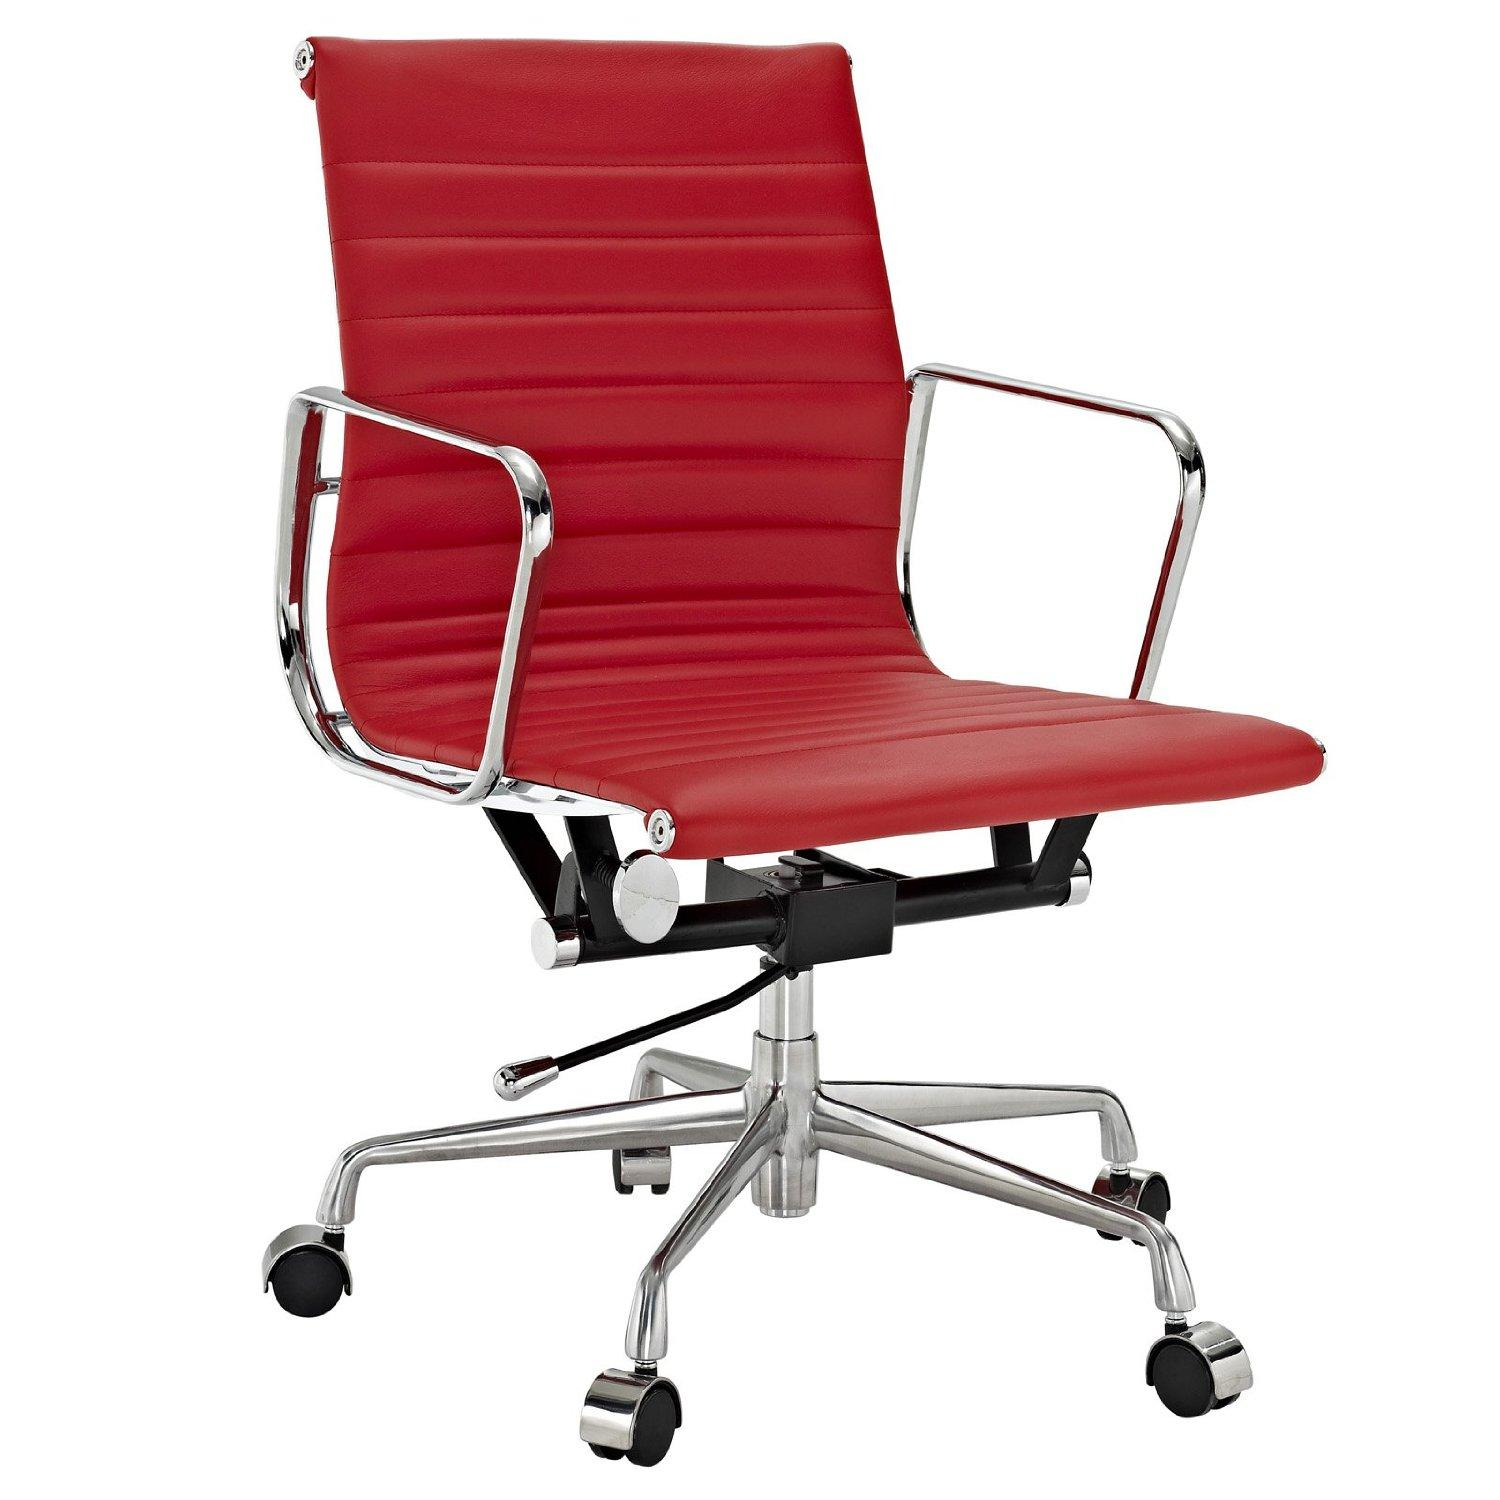 Red office chair modern -